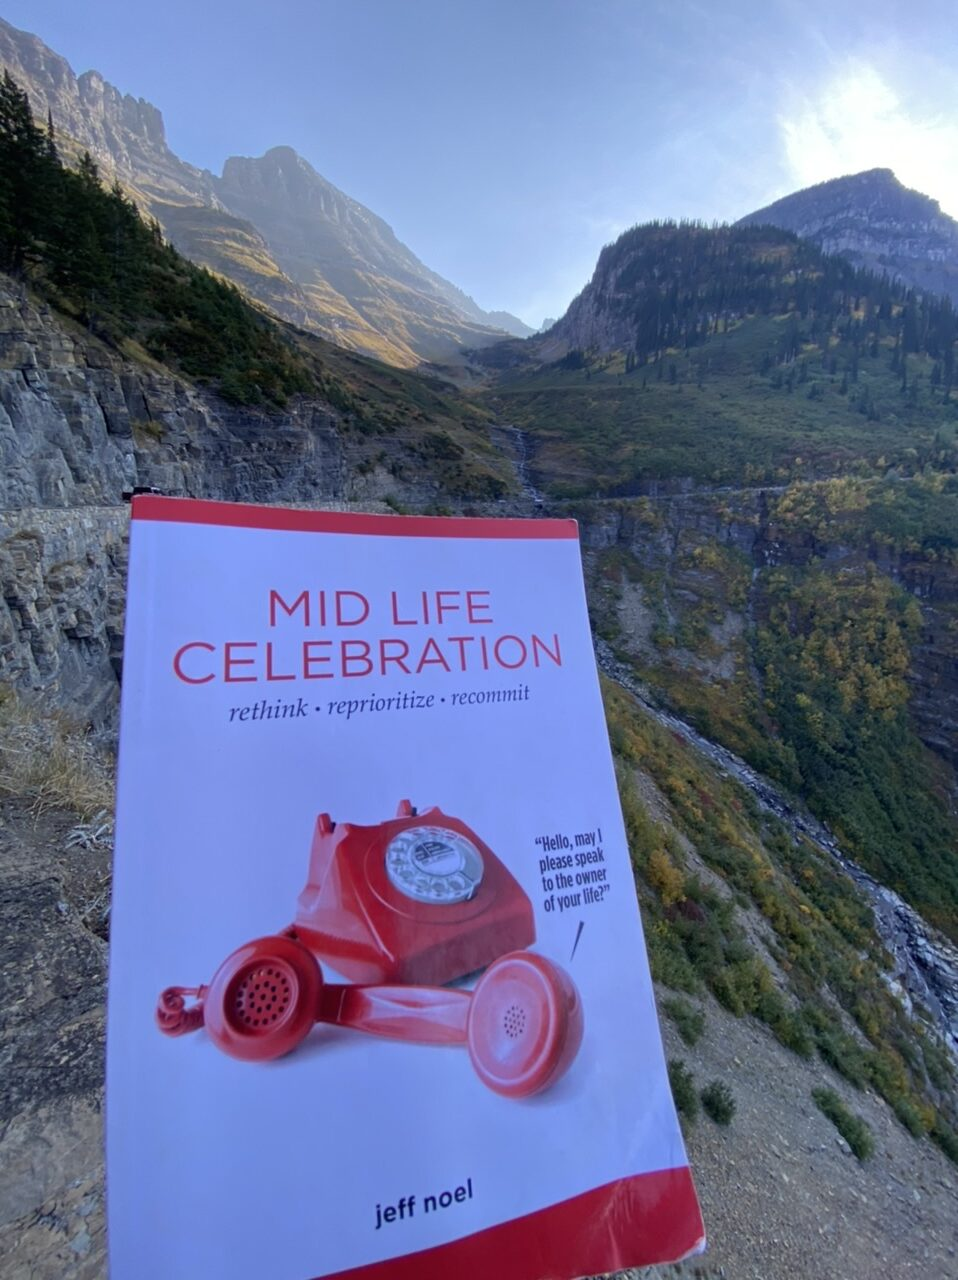 Book entitled mid life celebration with mountains in the background